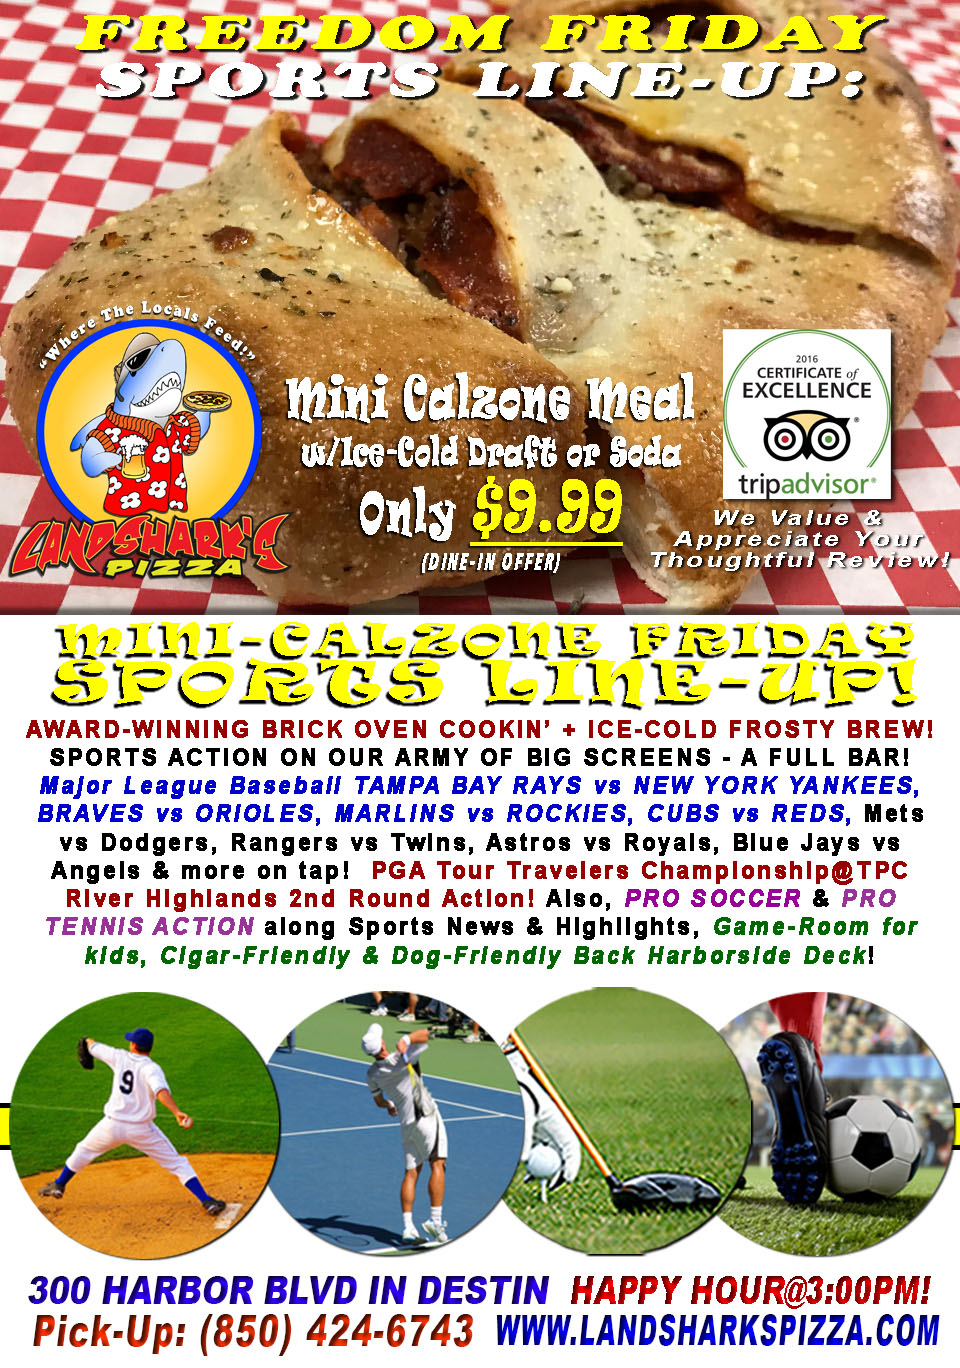 Tasty Freedom Friday $9.99 2-Top Calzone & Brew|TAMPA BAY RAYS vs YANKEES & Lots More!